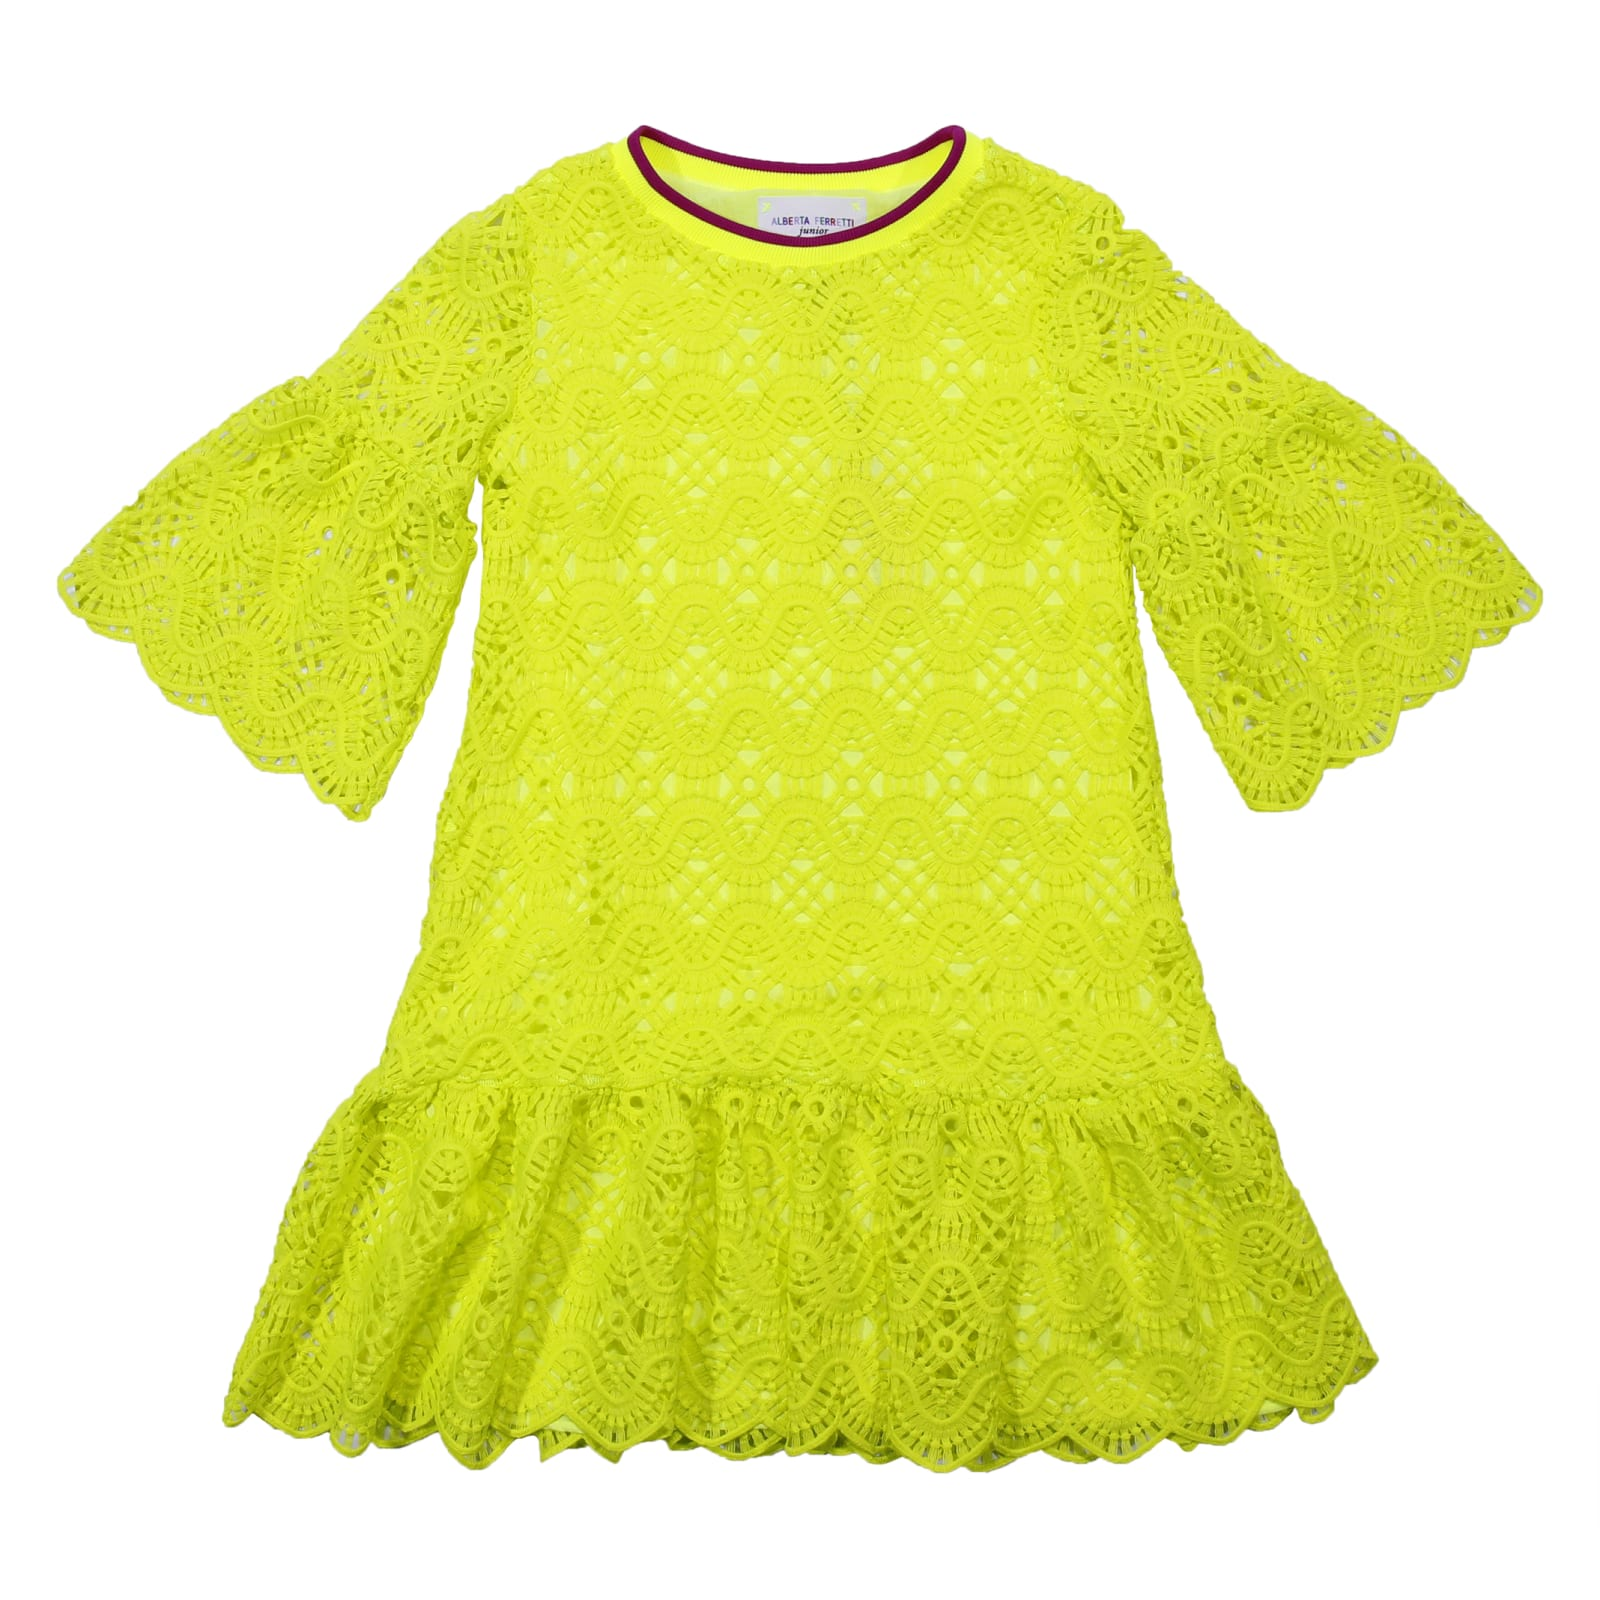 Alberta Ferretti Fluo Yellow Broderie Anglaise Dress